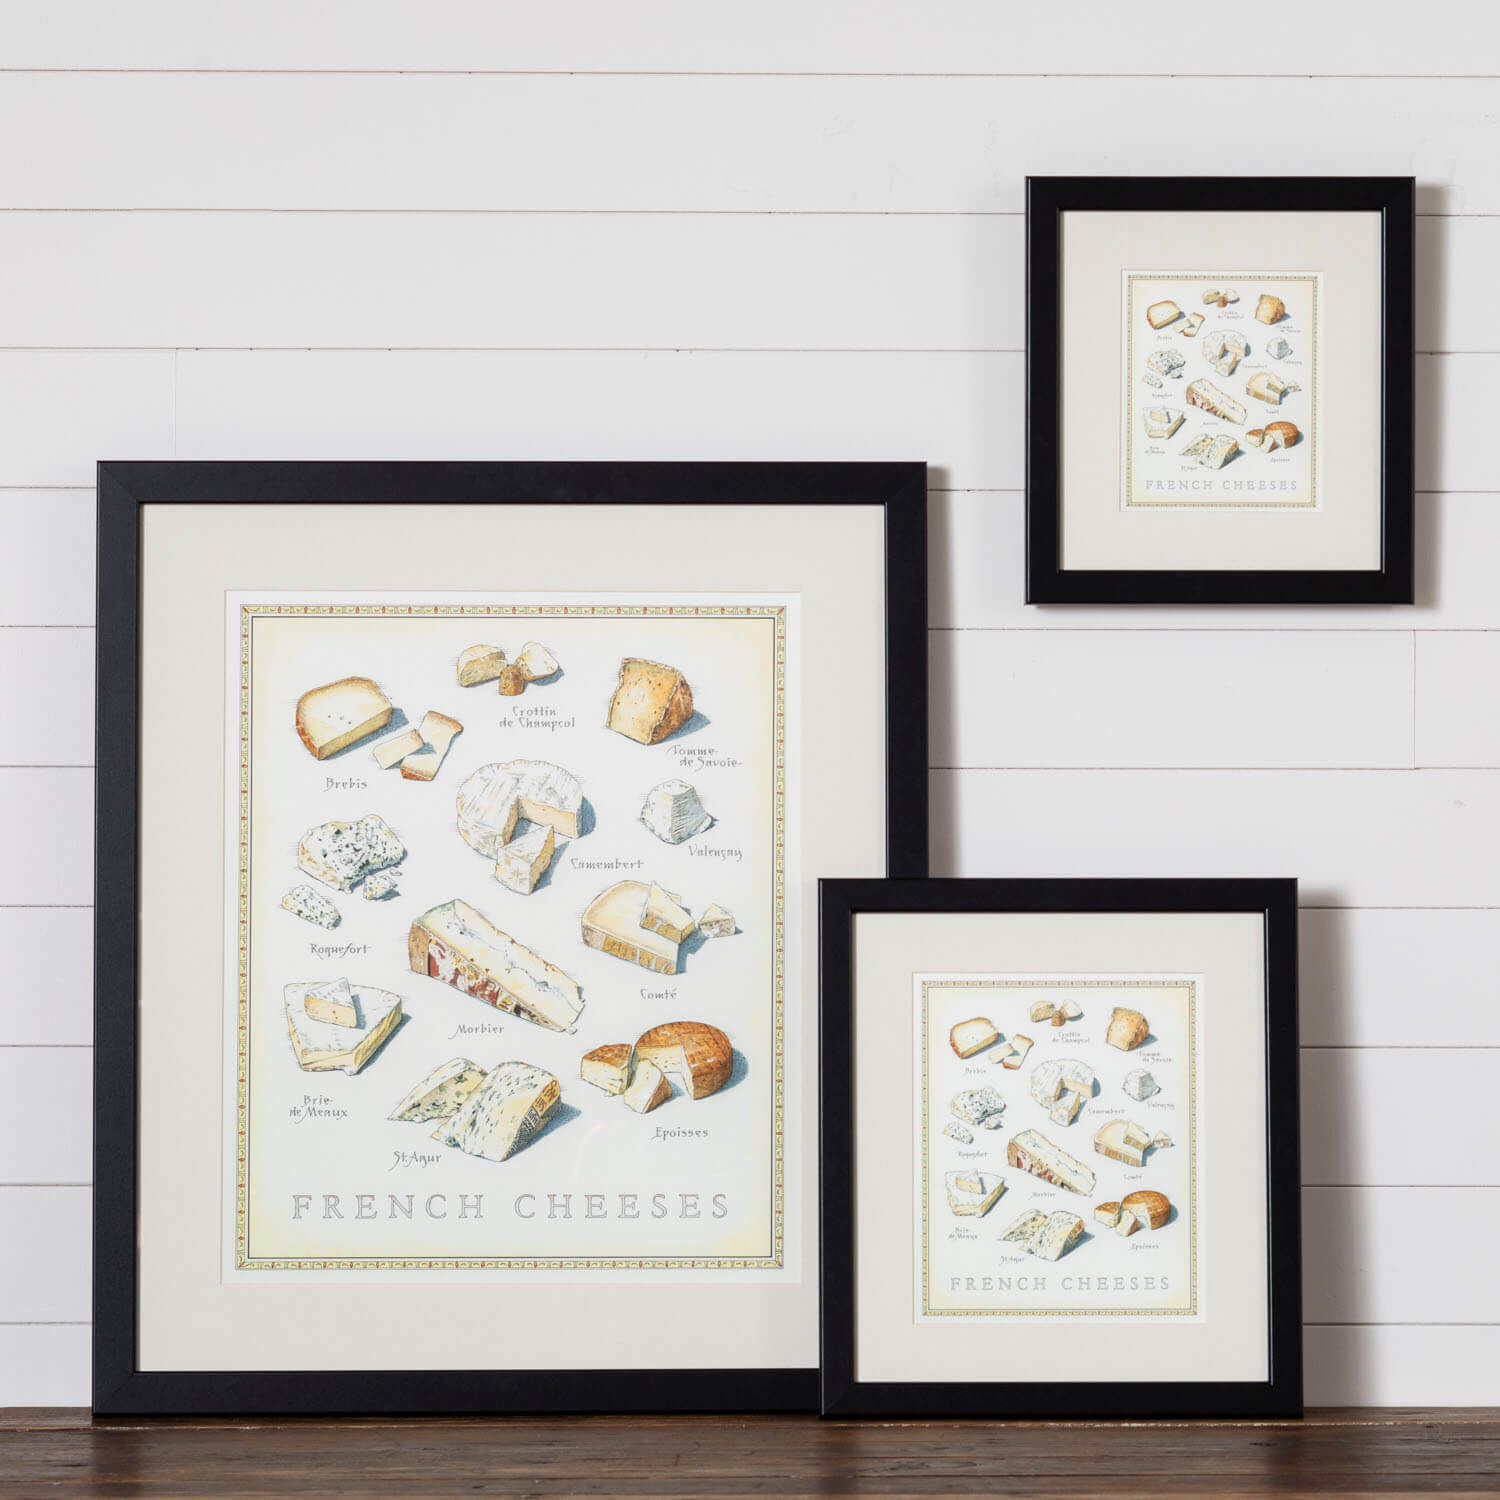 Cook's Illustrated Framed Print: French Cheeses